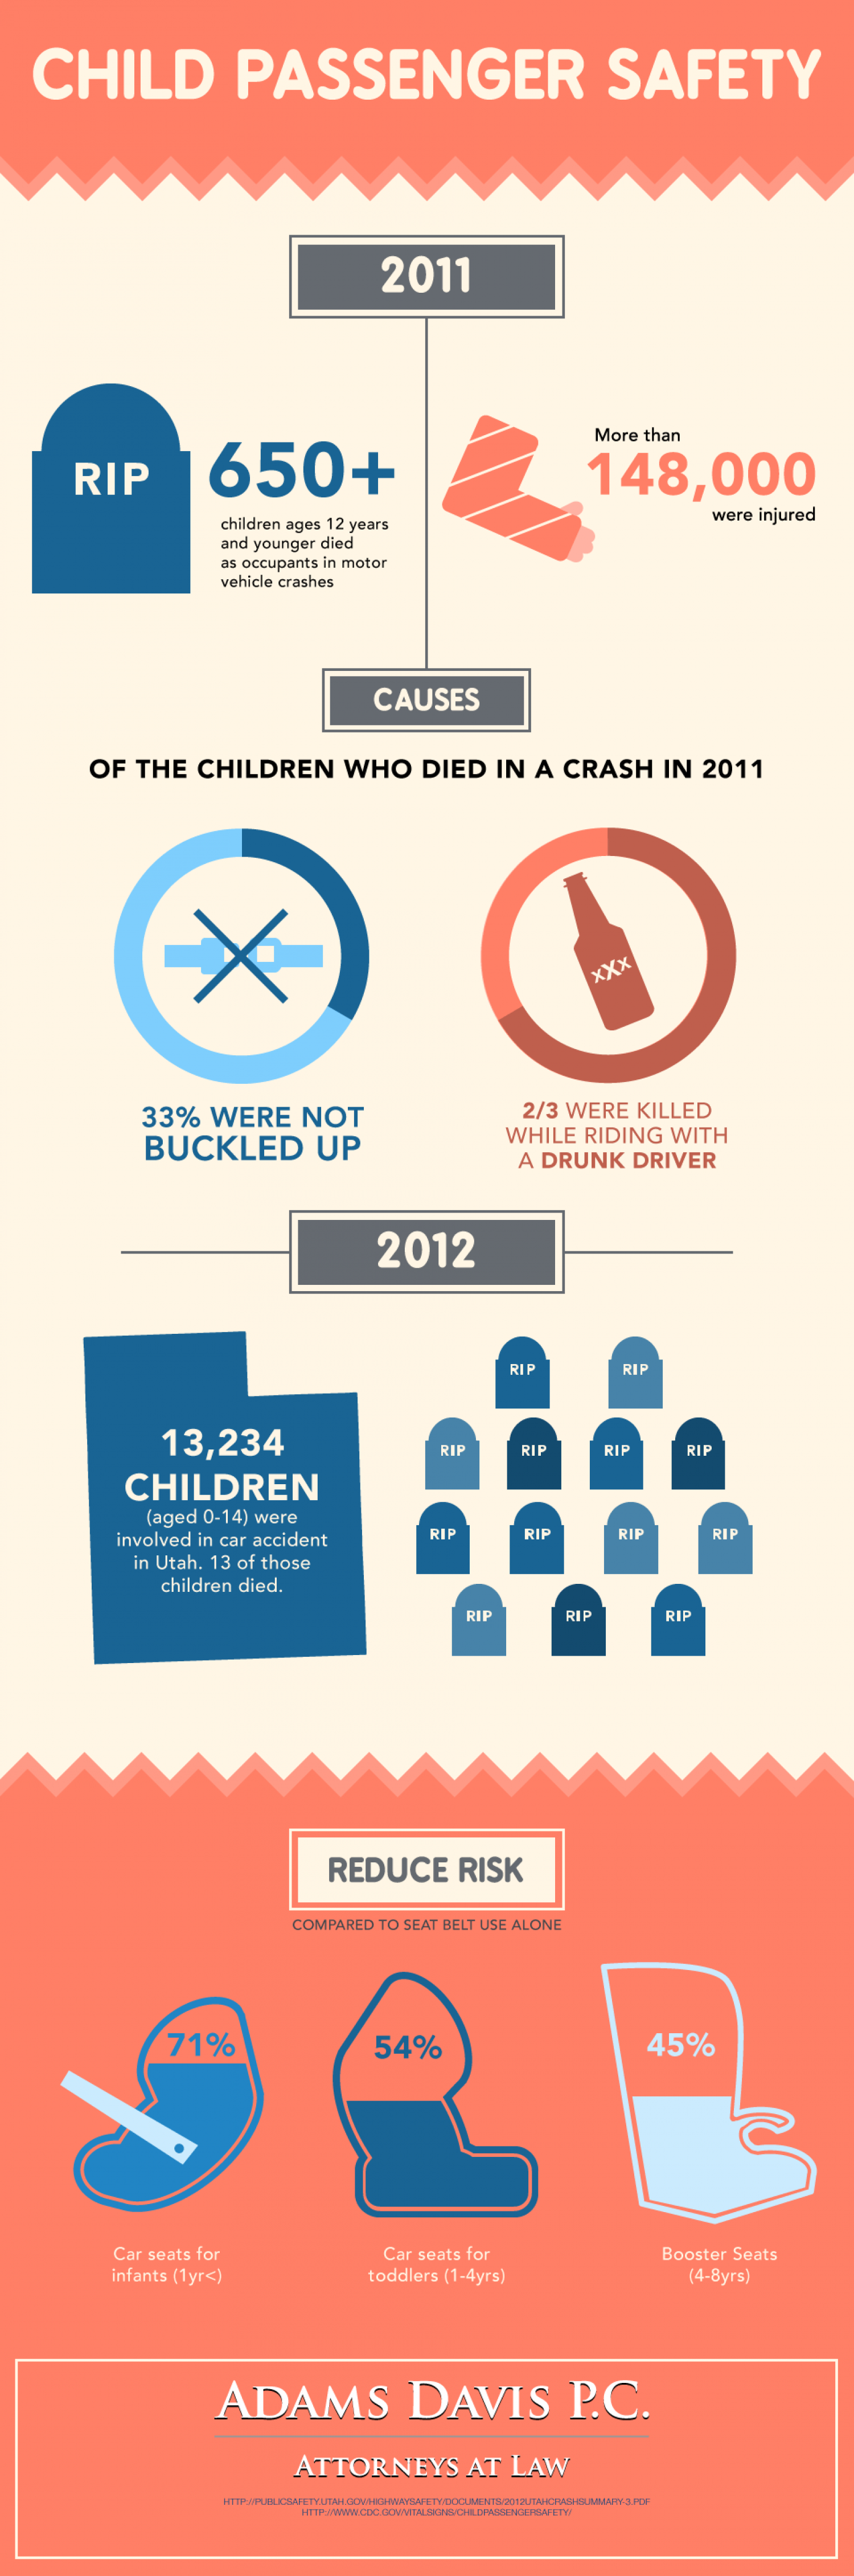 Child Passenger Safety  Infographic